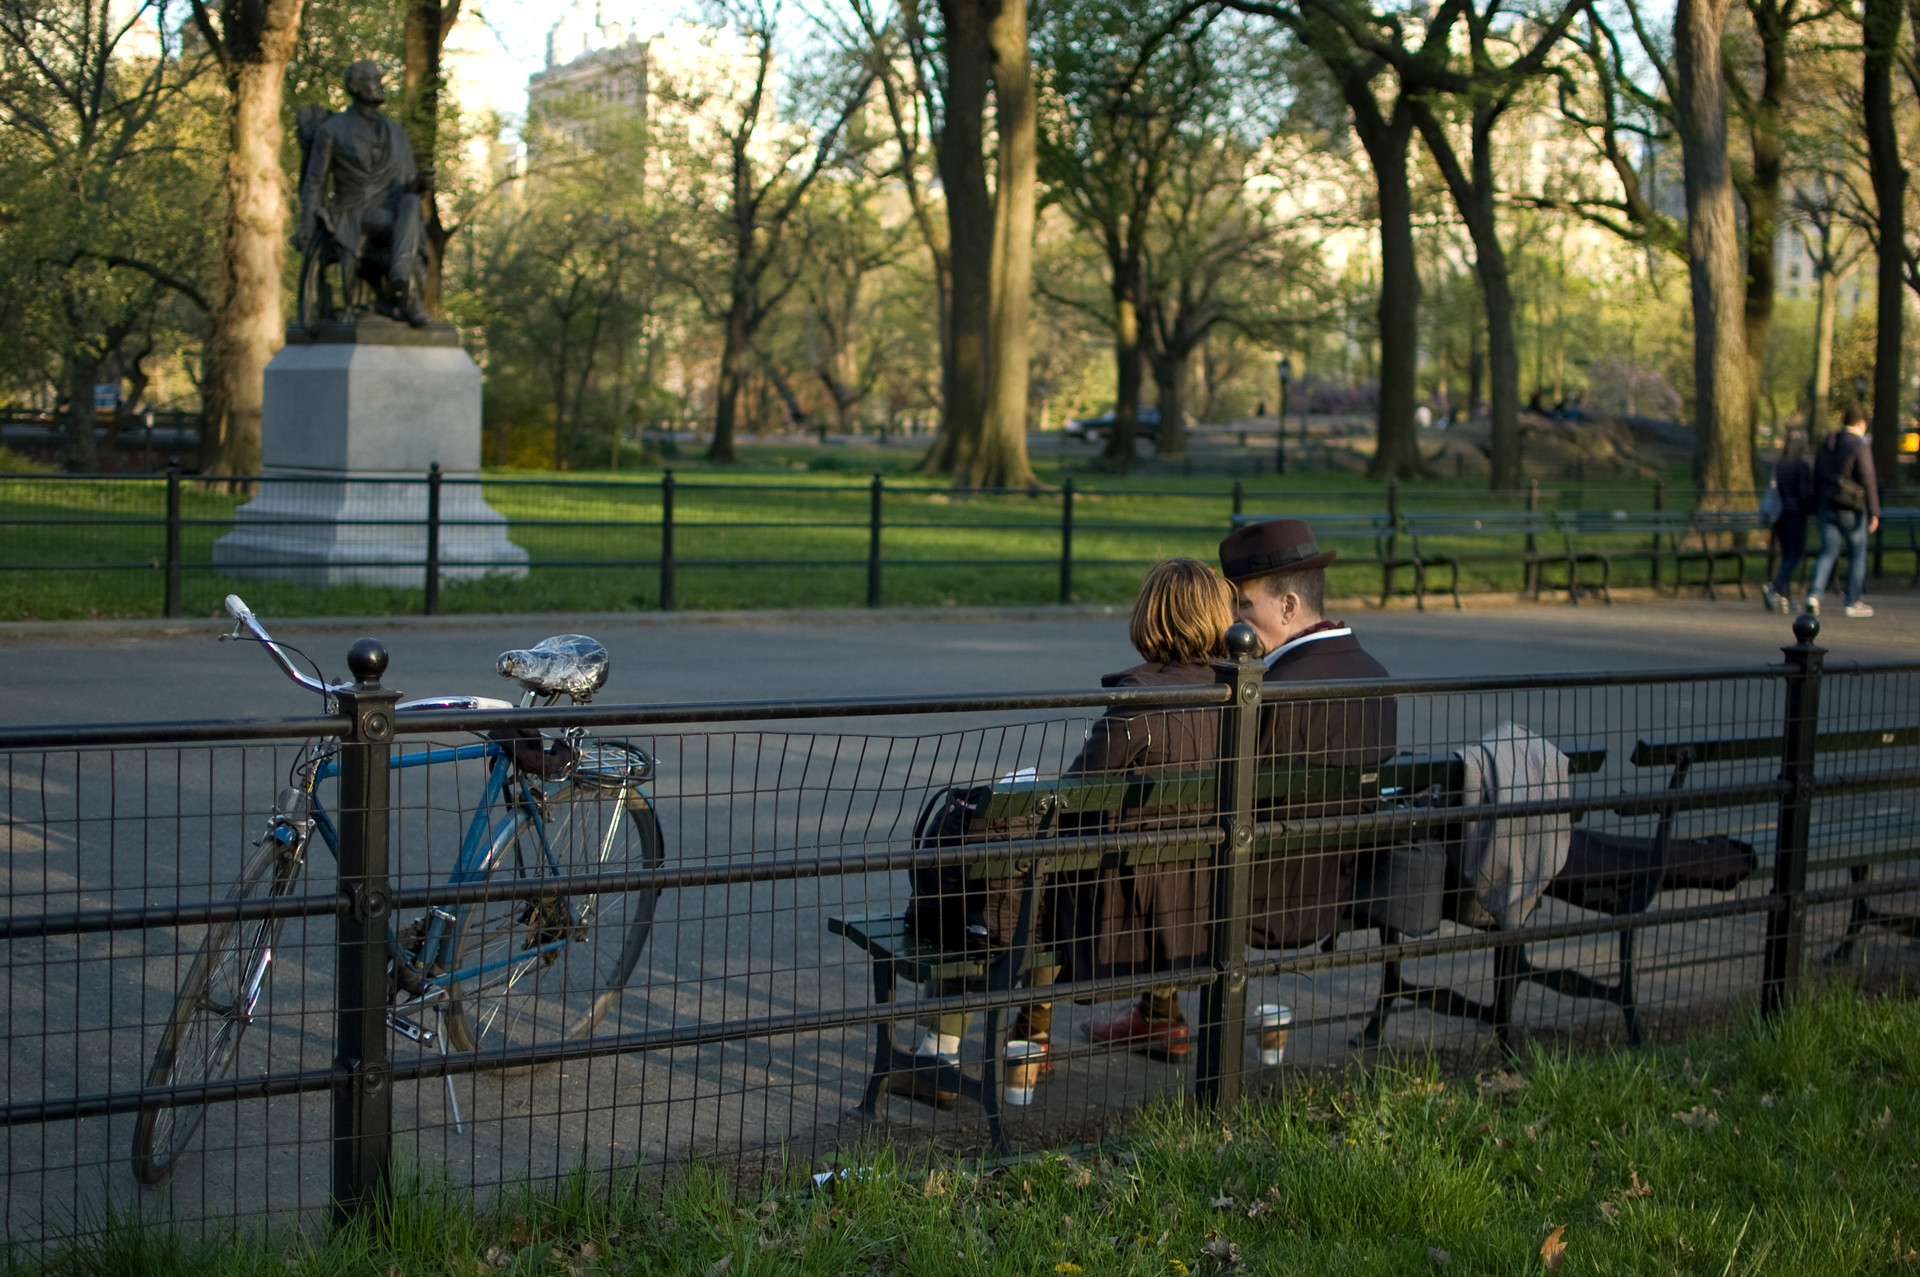 Bench sitters, Central Park, 2013